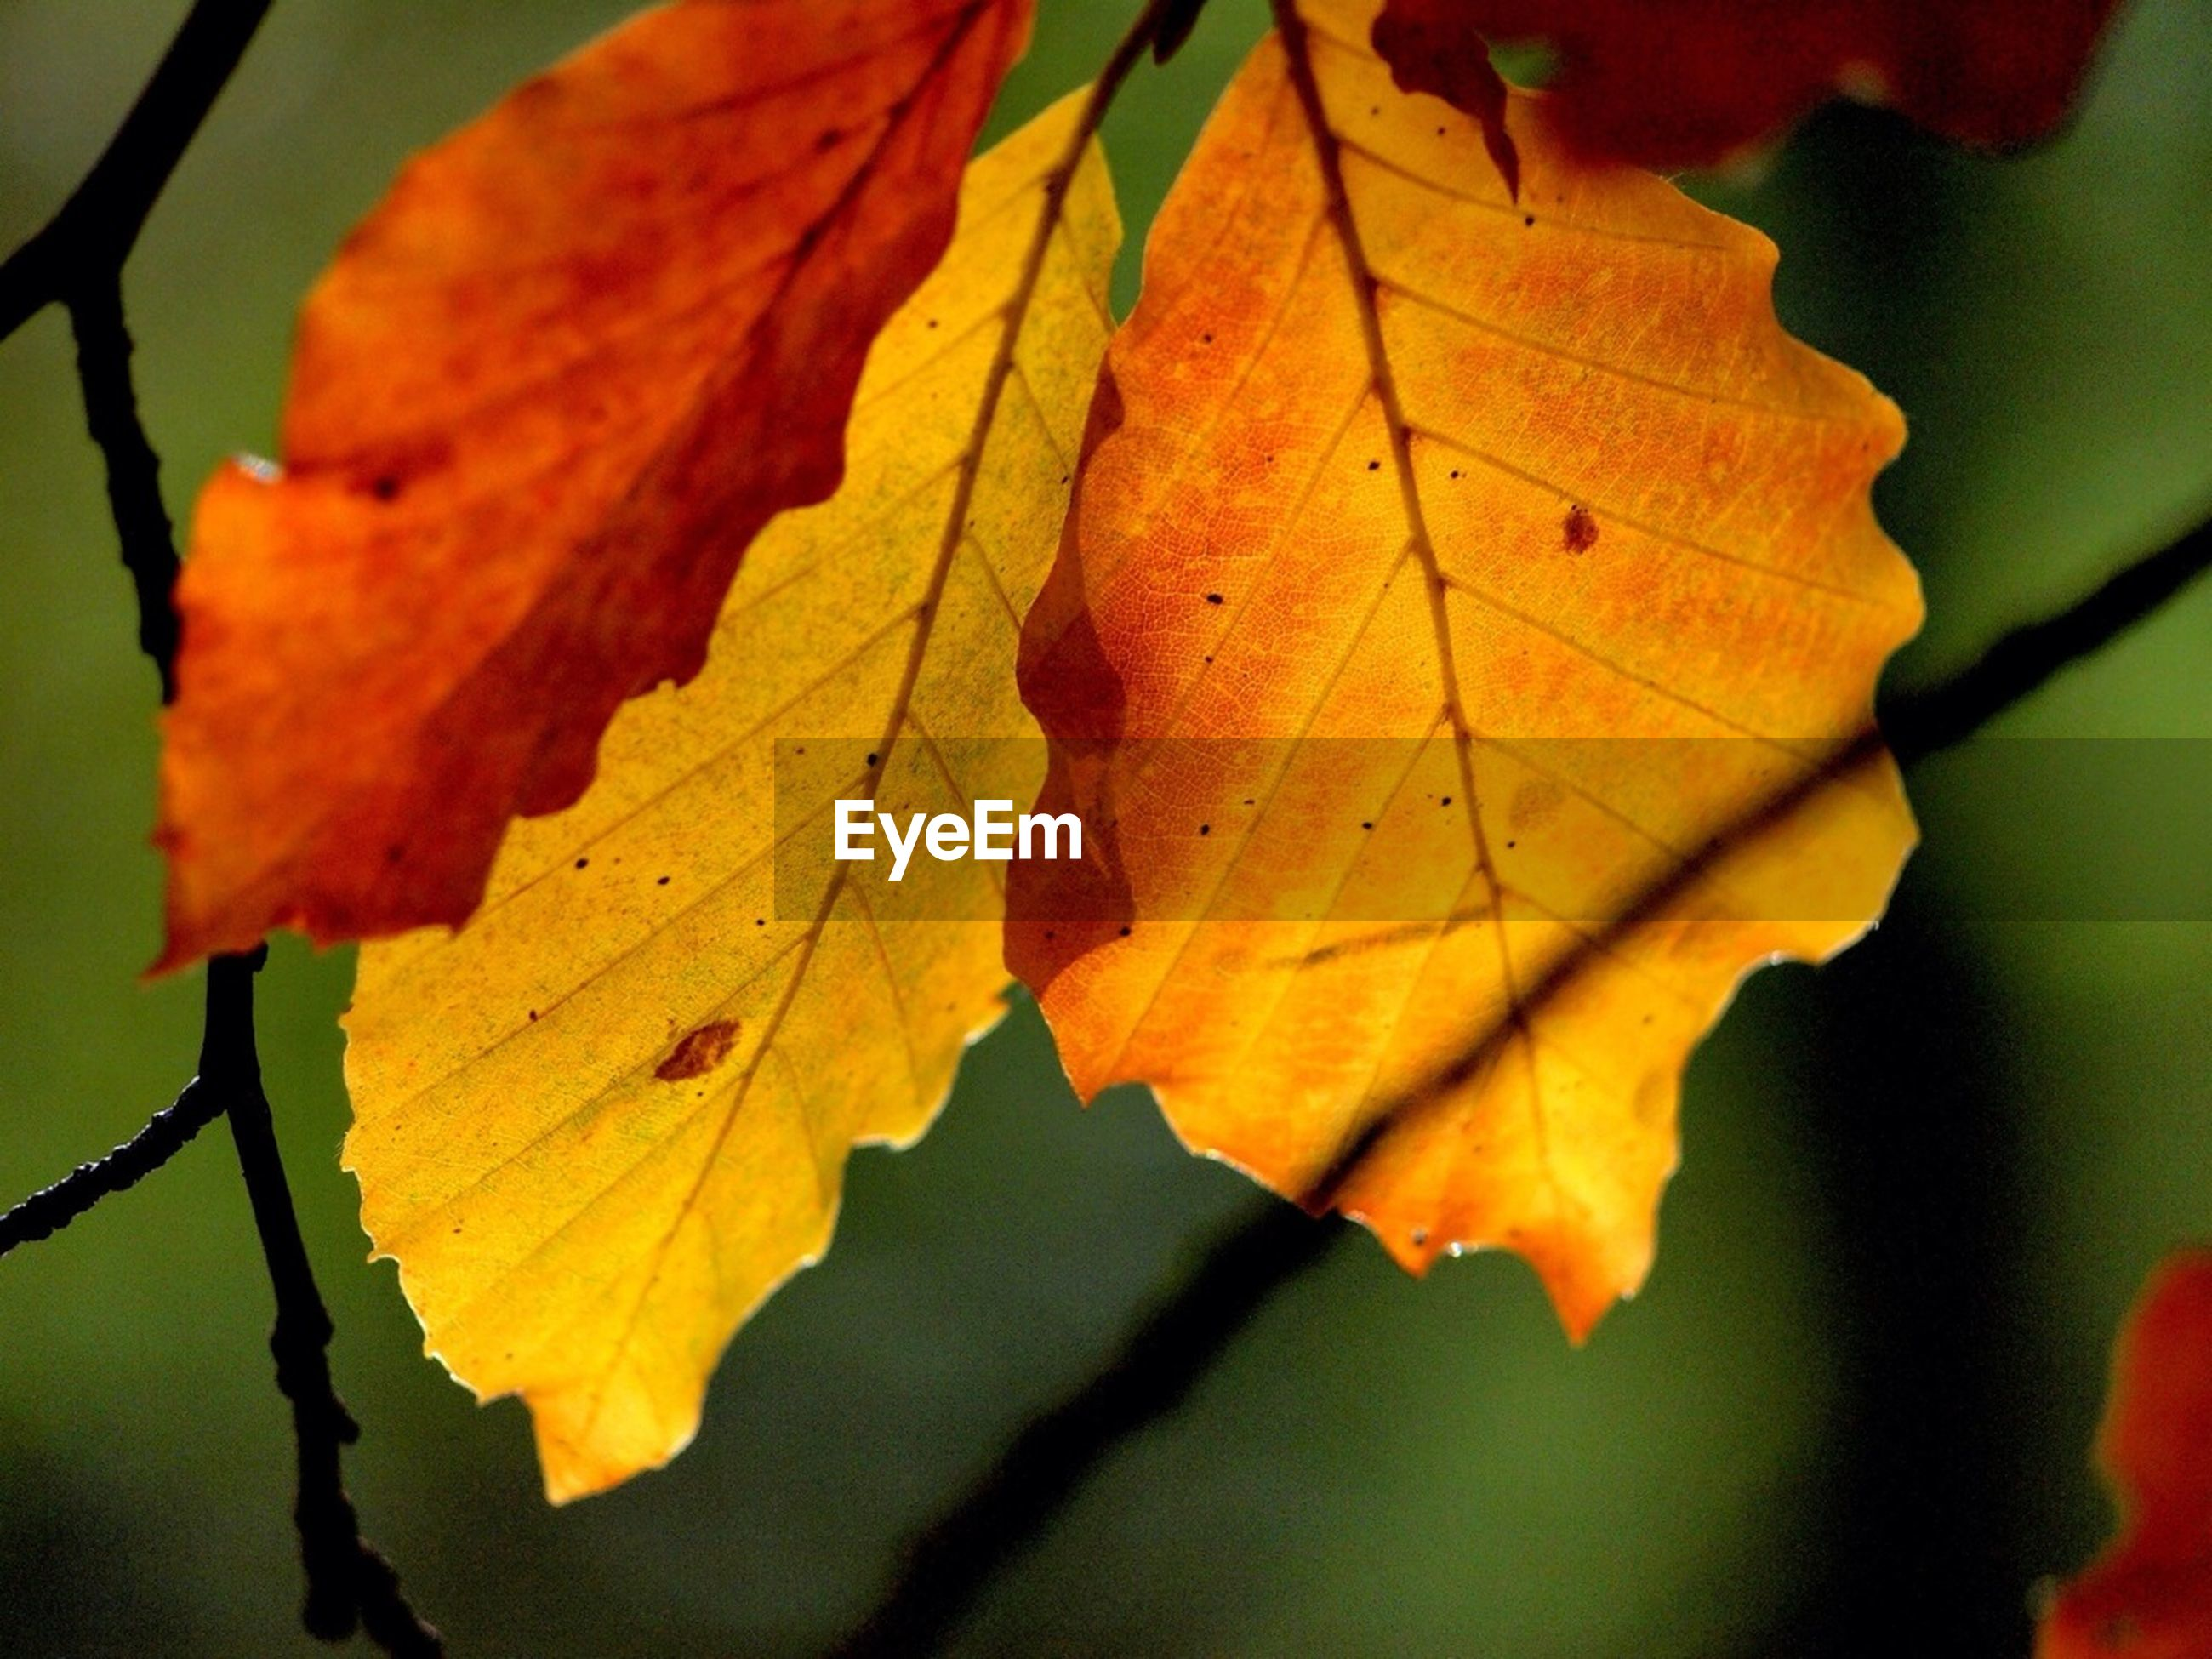 leaf, autumn, leaf vein, change, orange color, close-up, season, focus on foreground, leaves, nature, maple leaf, branch, natural pattern, growth, beauty in nature, selective focus, outdoors, no people, day, yellow